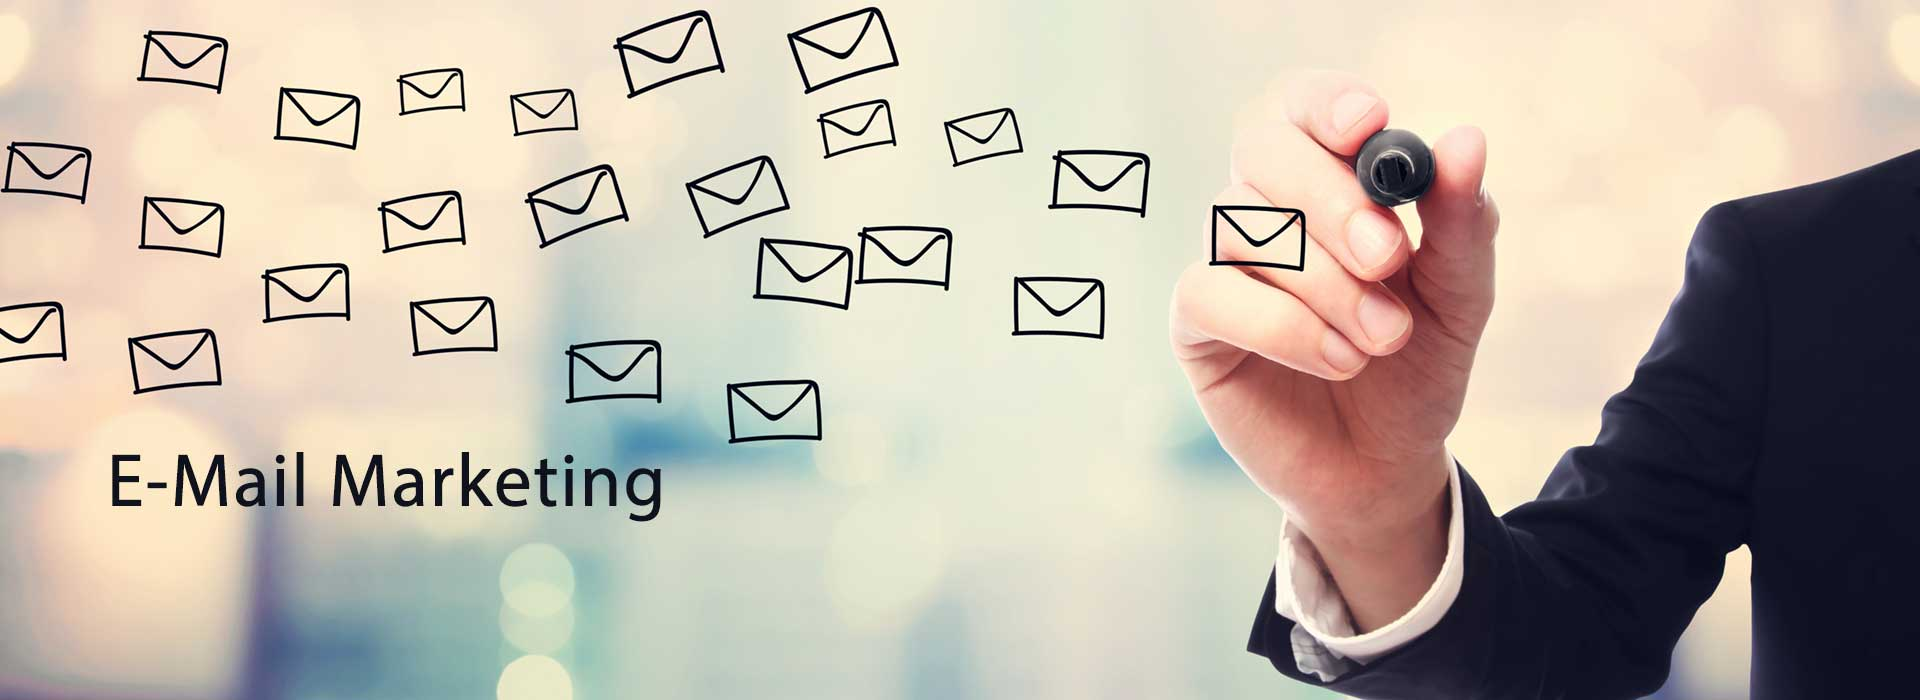 E-Mail-Marketing (Newsletter) - Internet Beratung Spengler - Webmaster und Webdesign Frankfurt Main